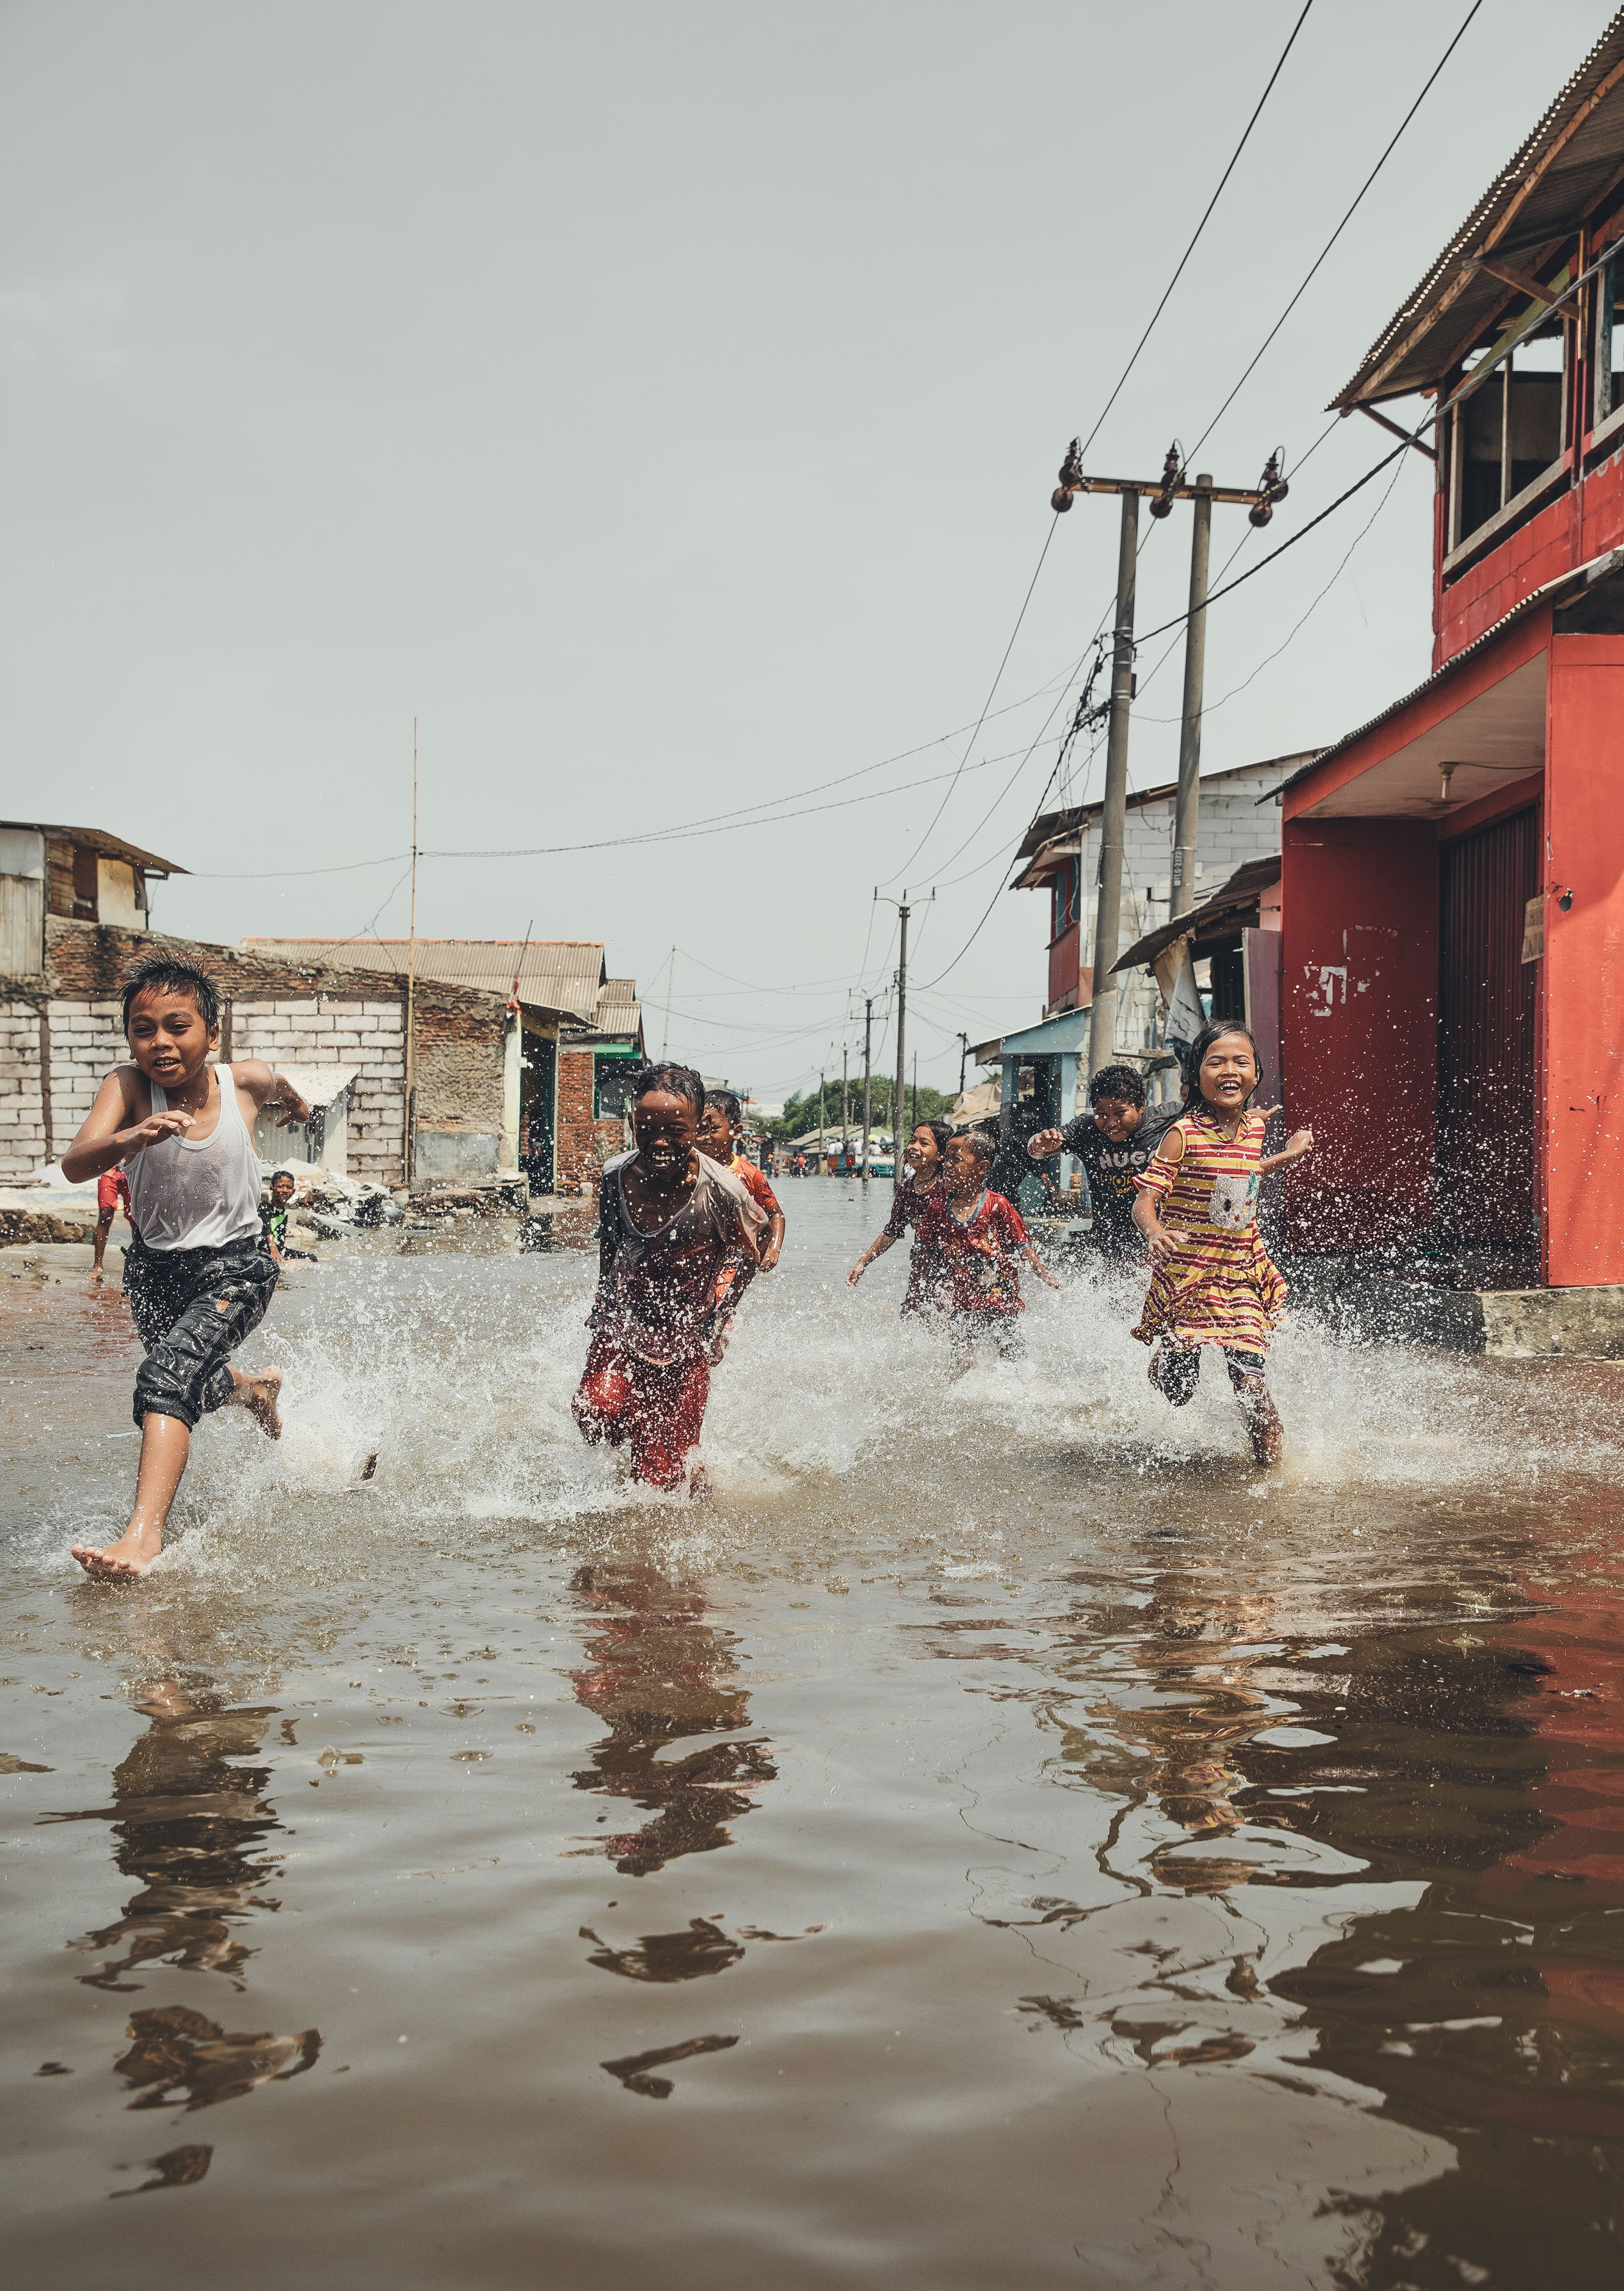 Flooded slums